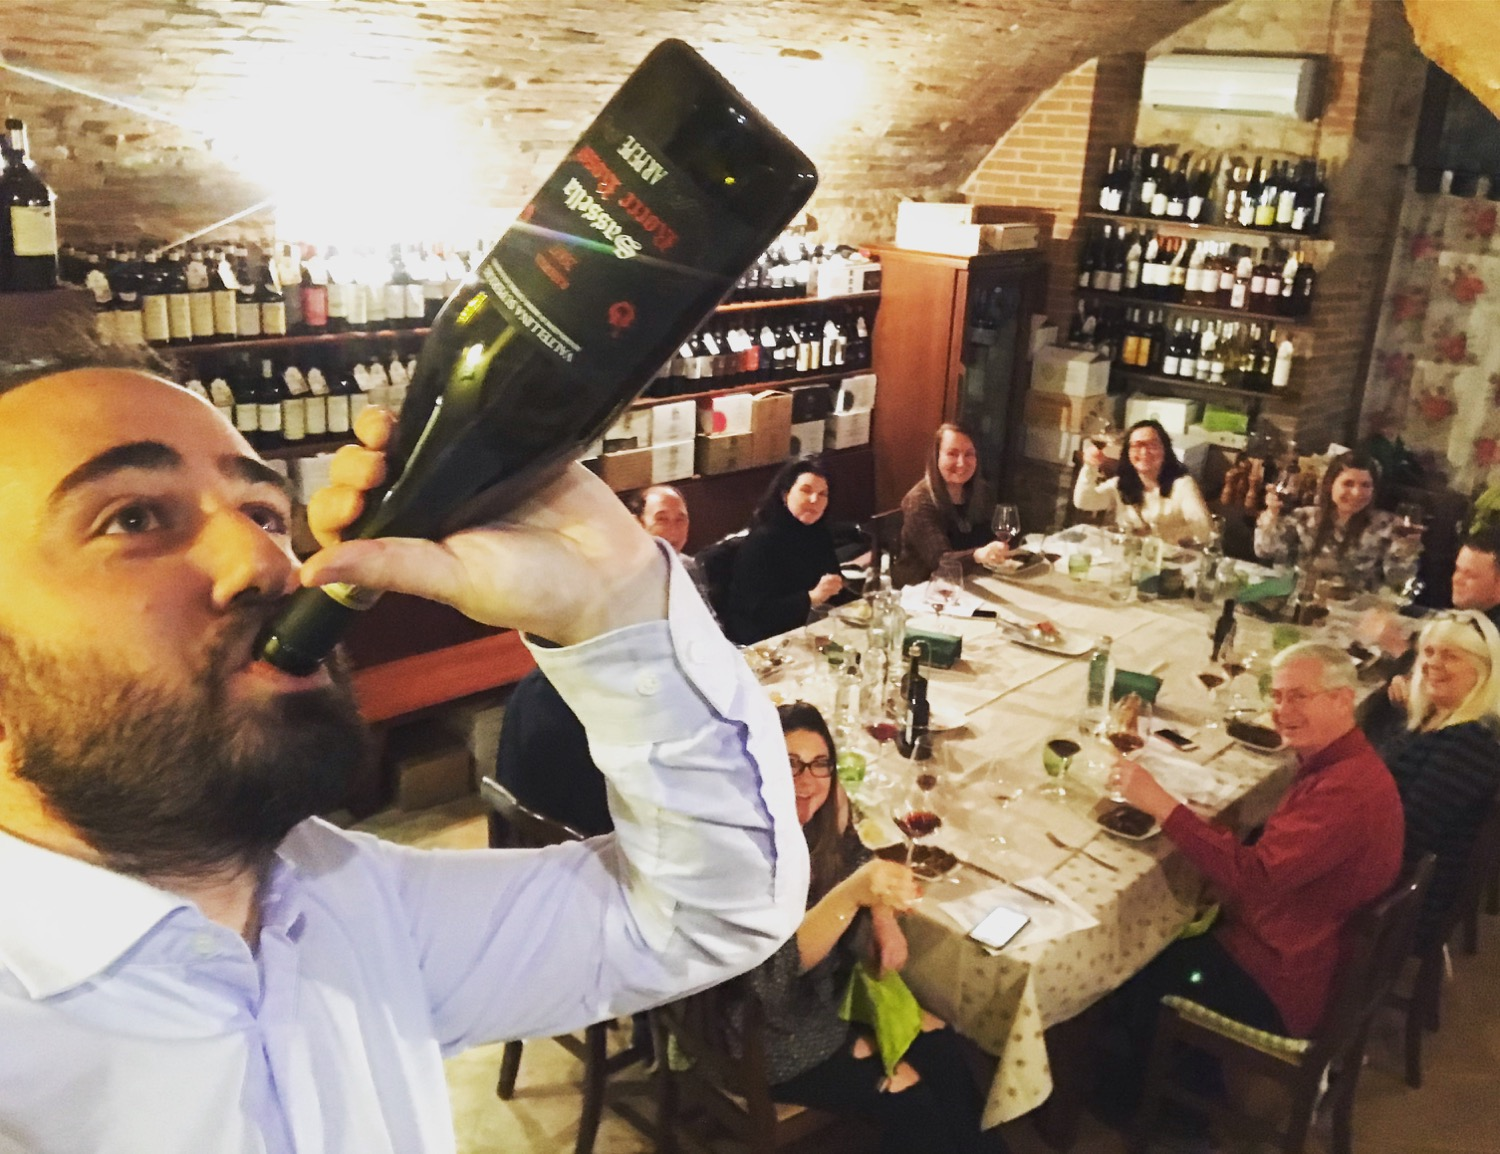 Francesco the crazy Somm